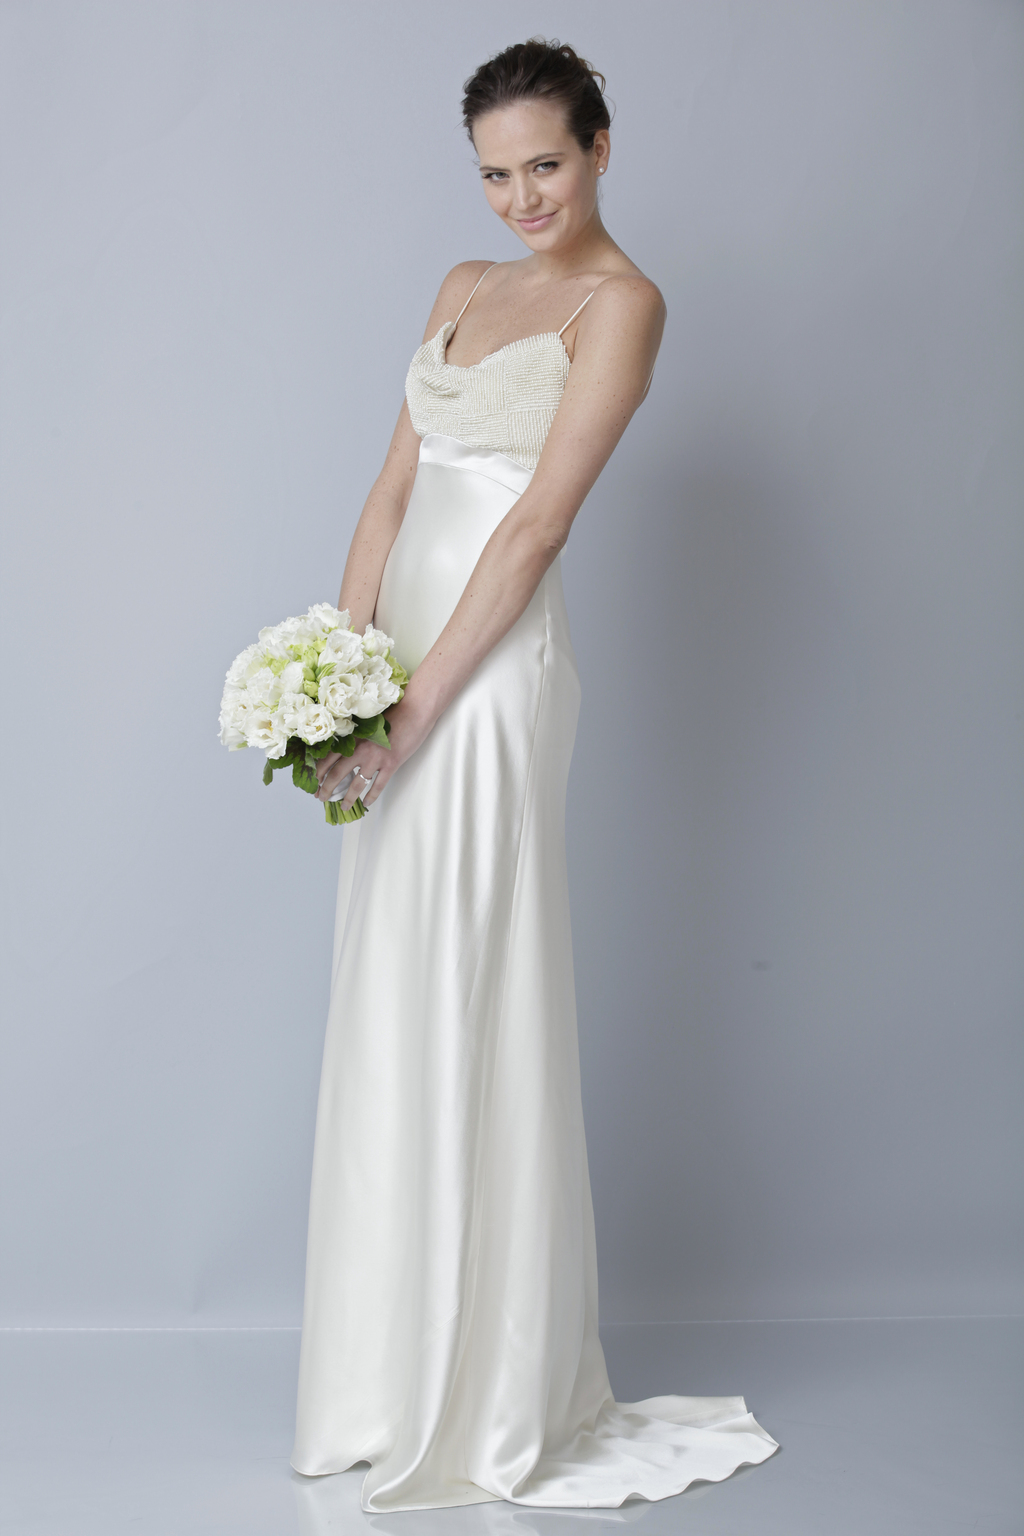 Theia-white-collection-wedding-dress-spring-2013-bridal-gown-890001.full